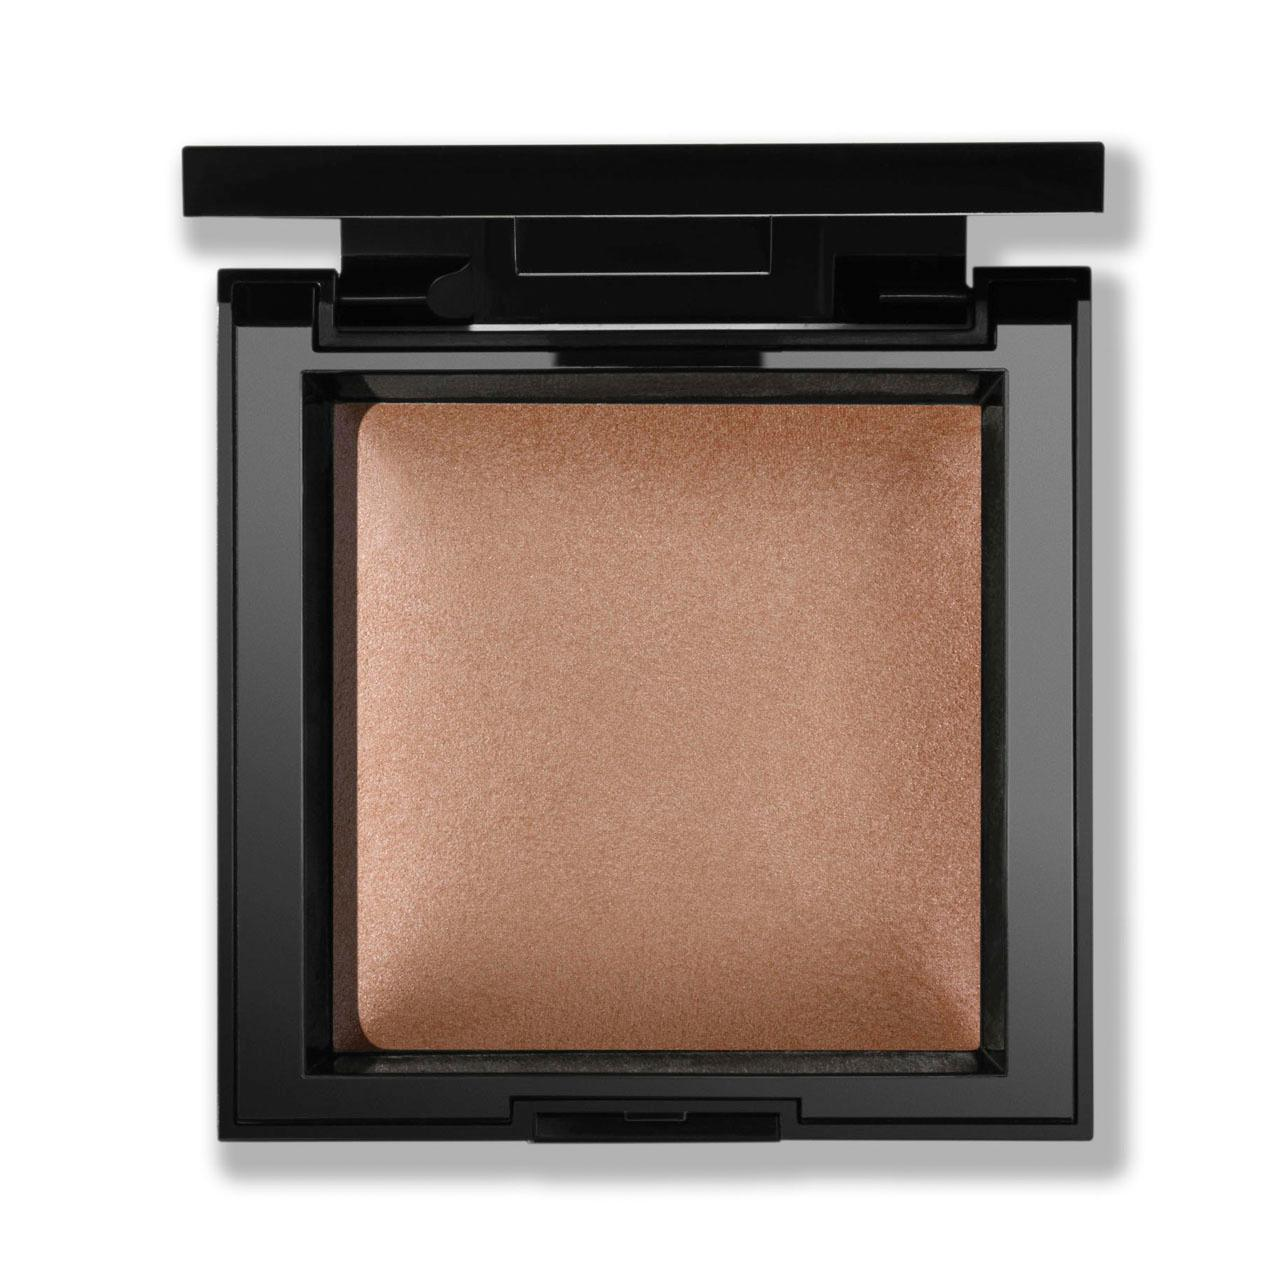 An image of bareMinerals Invisible Bronze Tan